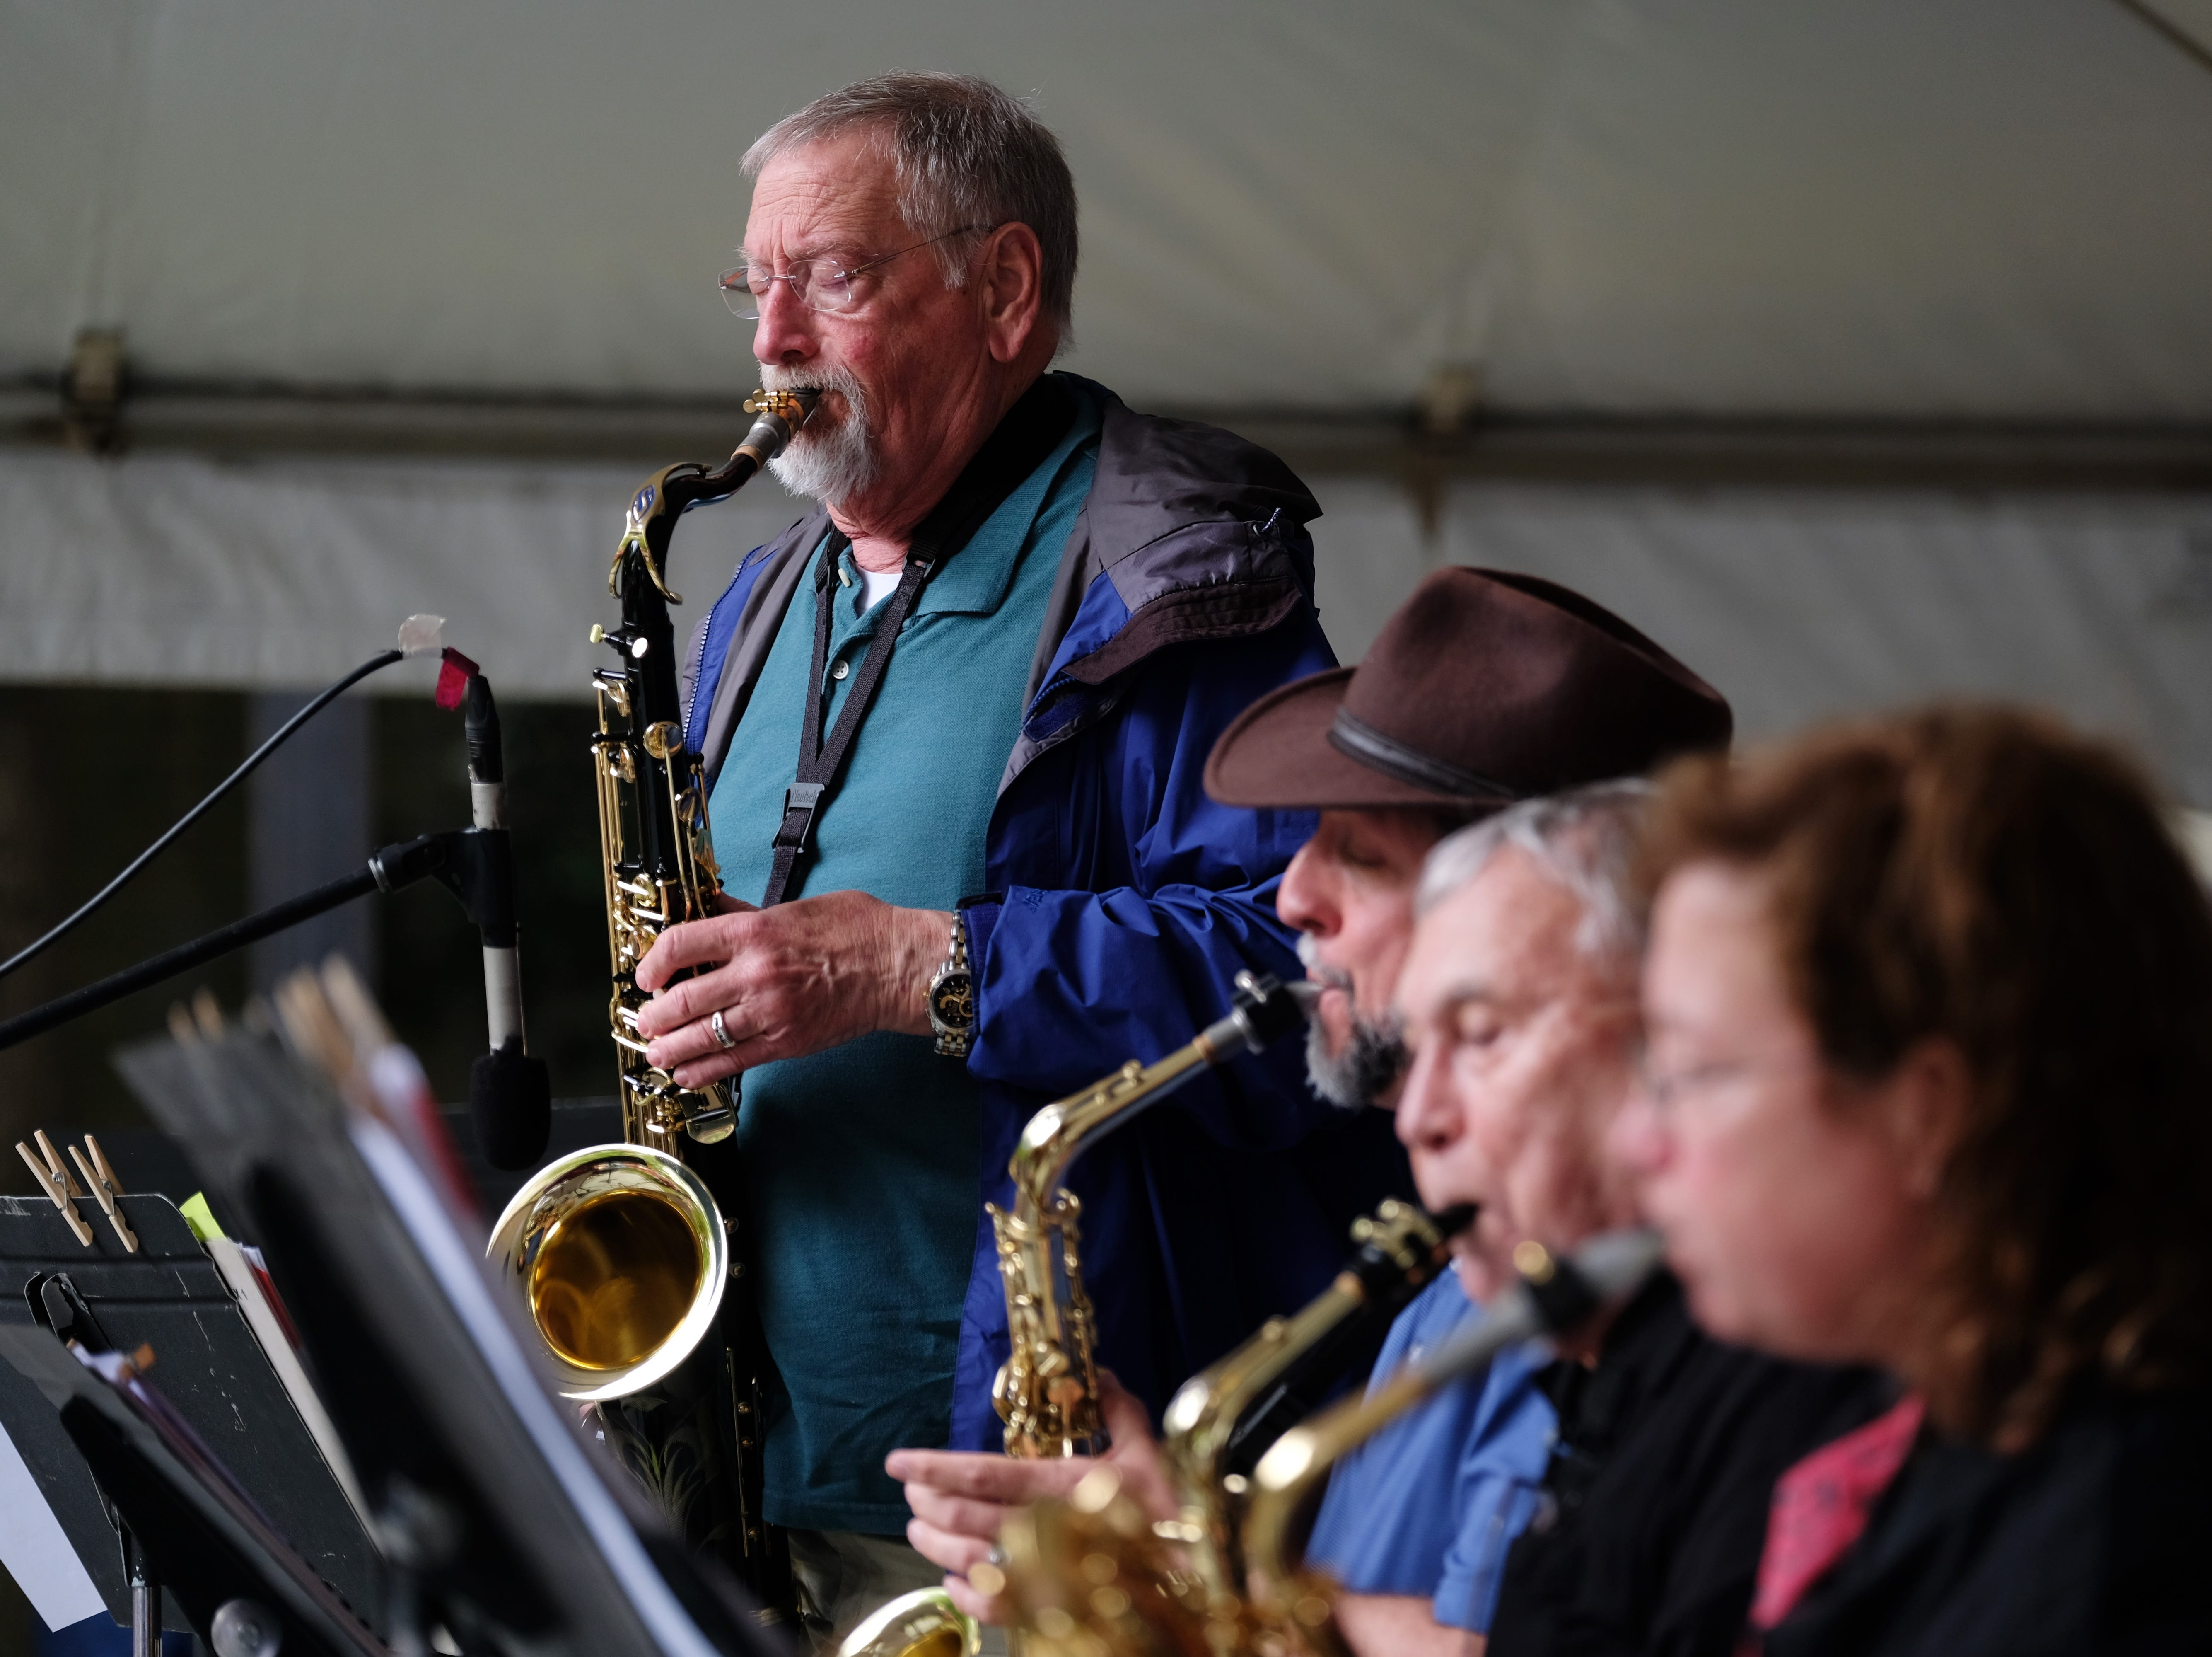 Saxophonist Mike Palmier of the Ensemble Swing Time plays a solo during the Rossini Festival in Knoxville on Saturday, April 13, 2019. (Shawn Millsaps/Special to News Sentinel)